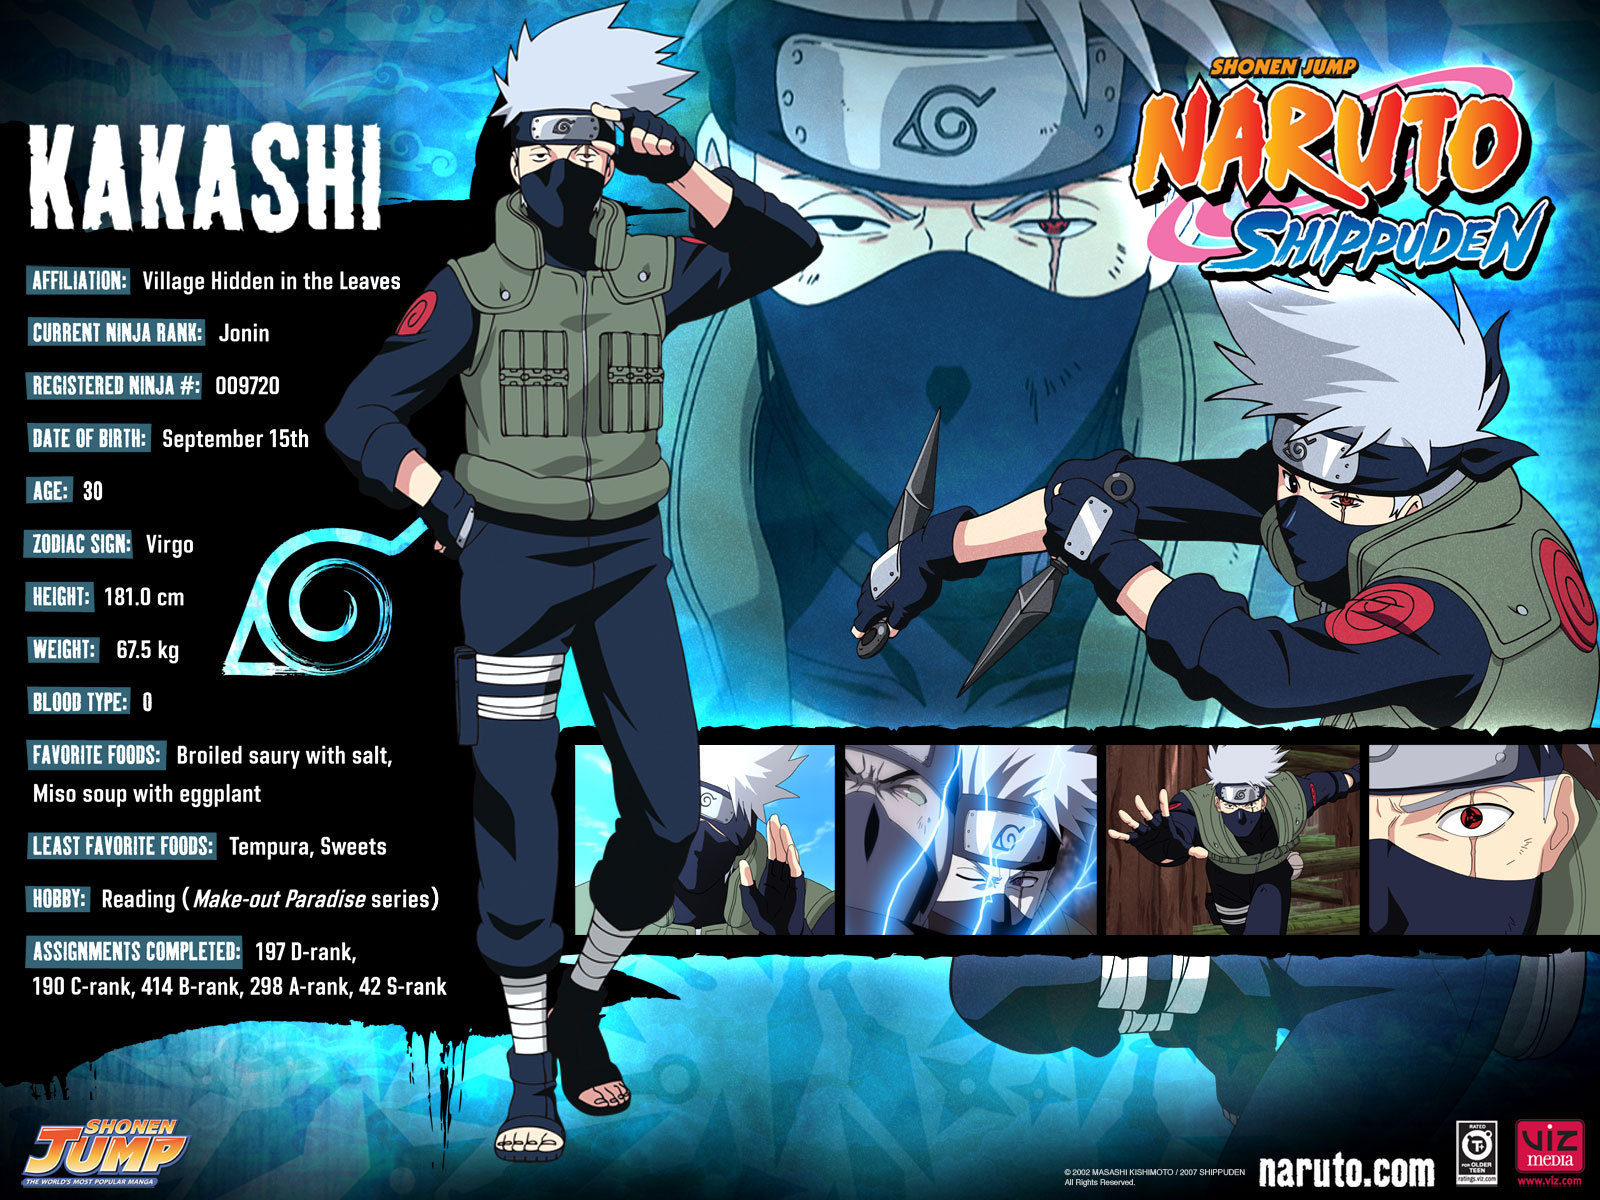 NarutoShippuden Naruto And Naruto Shippuden Wallpaper